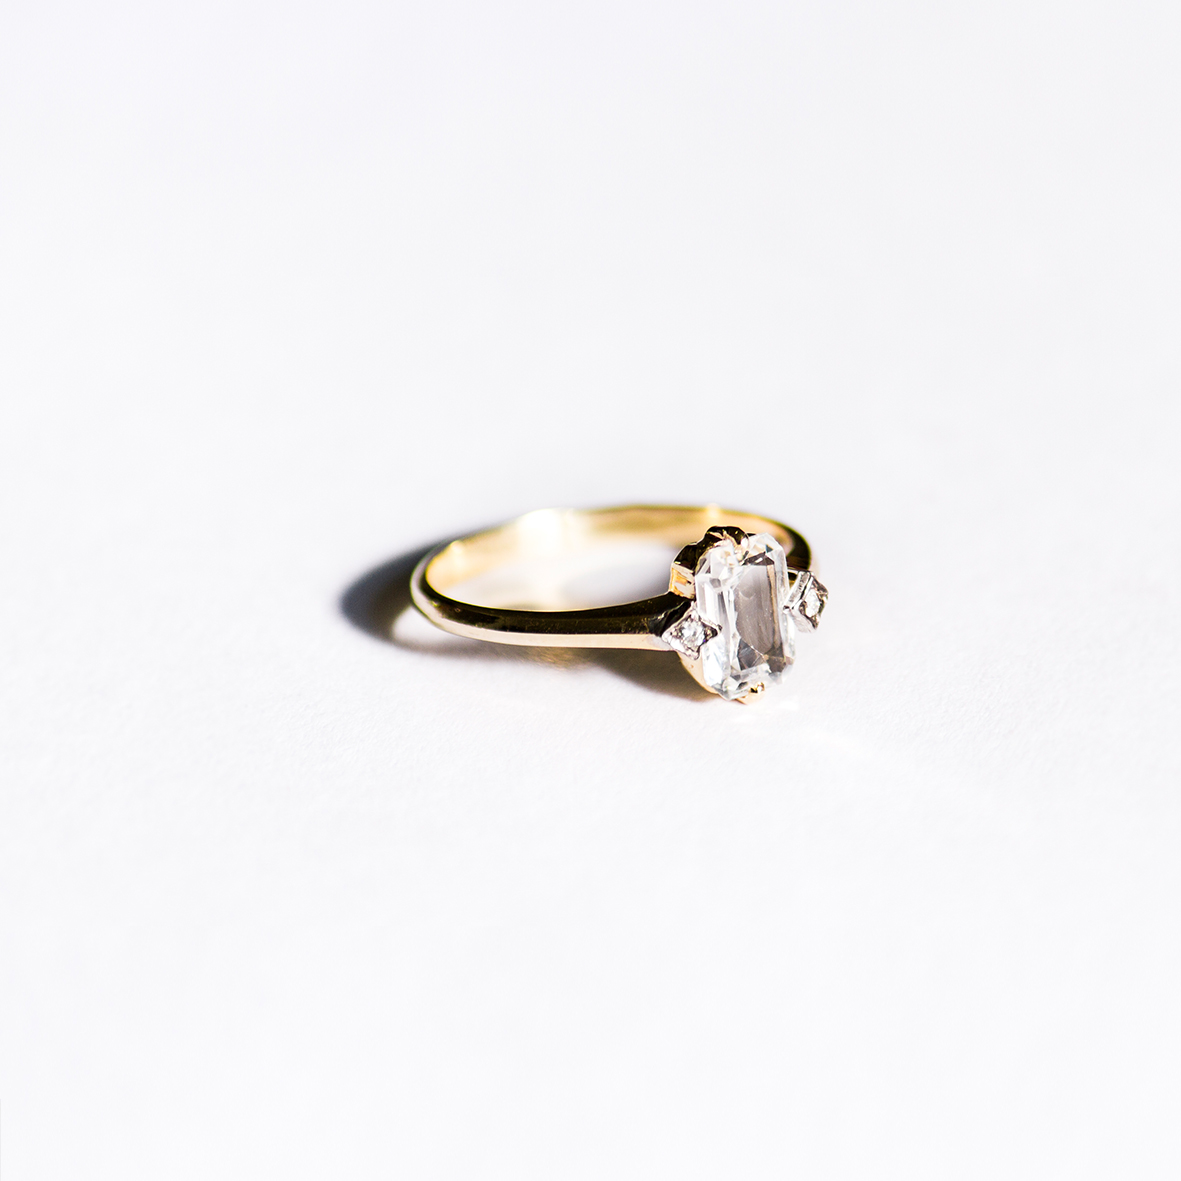 2. OONA_engagement_ficha1_single sapphire ring 2 copia